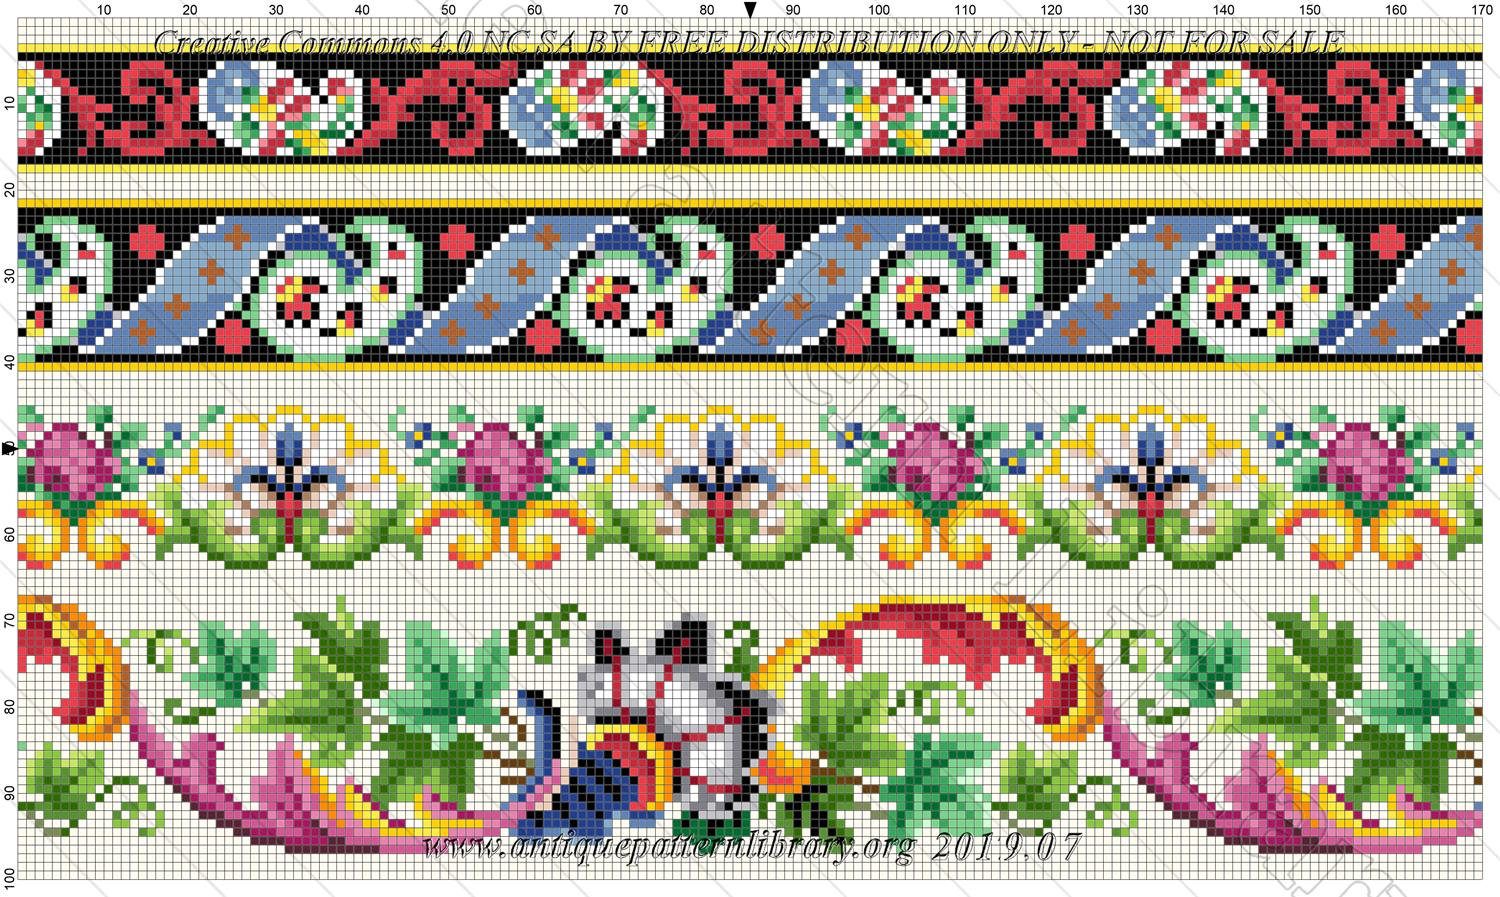 E-CR011 4 Berlin pattern fragments, 2 abstract and 2 flowered borders